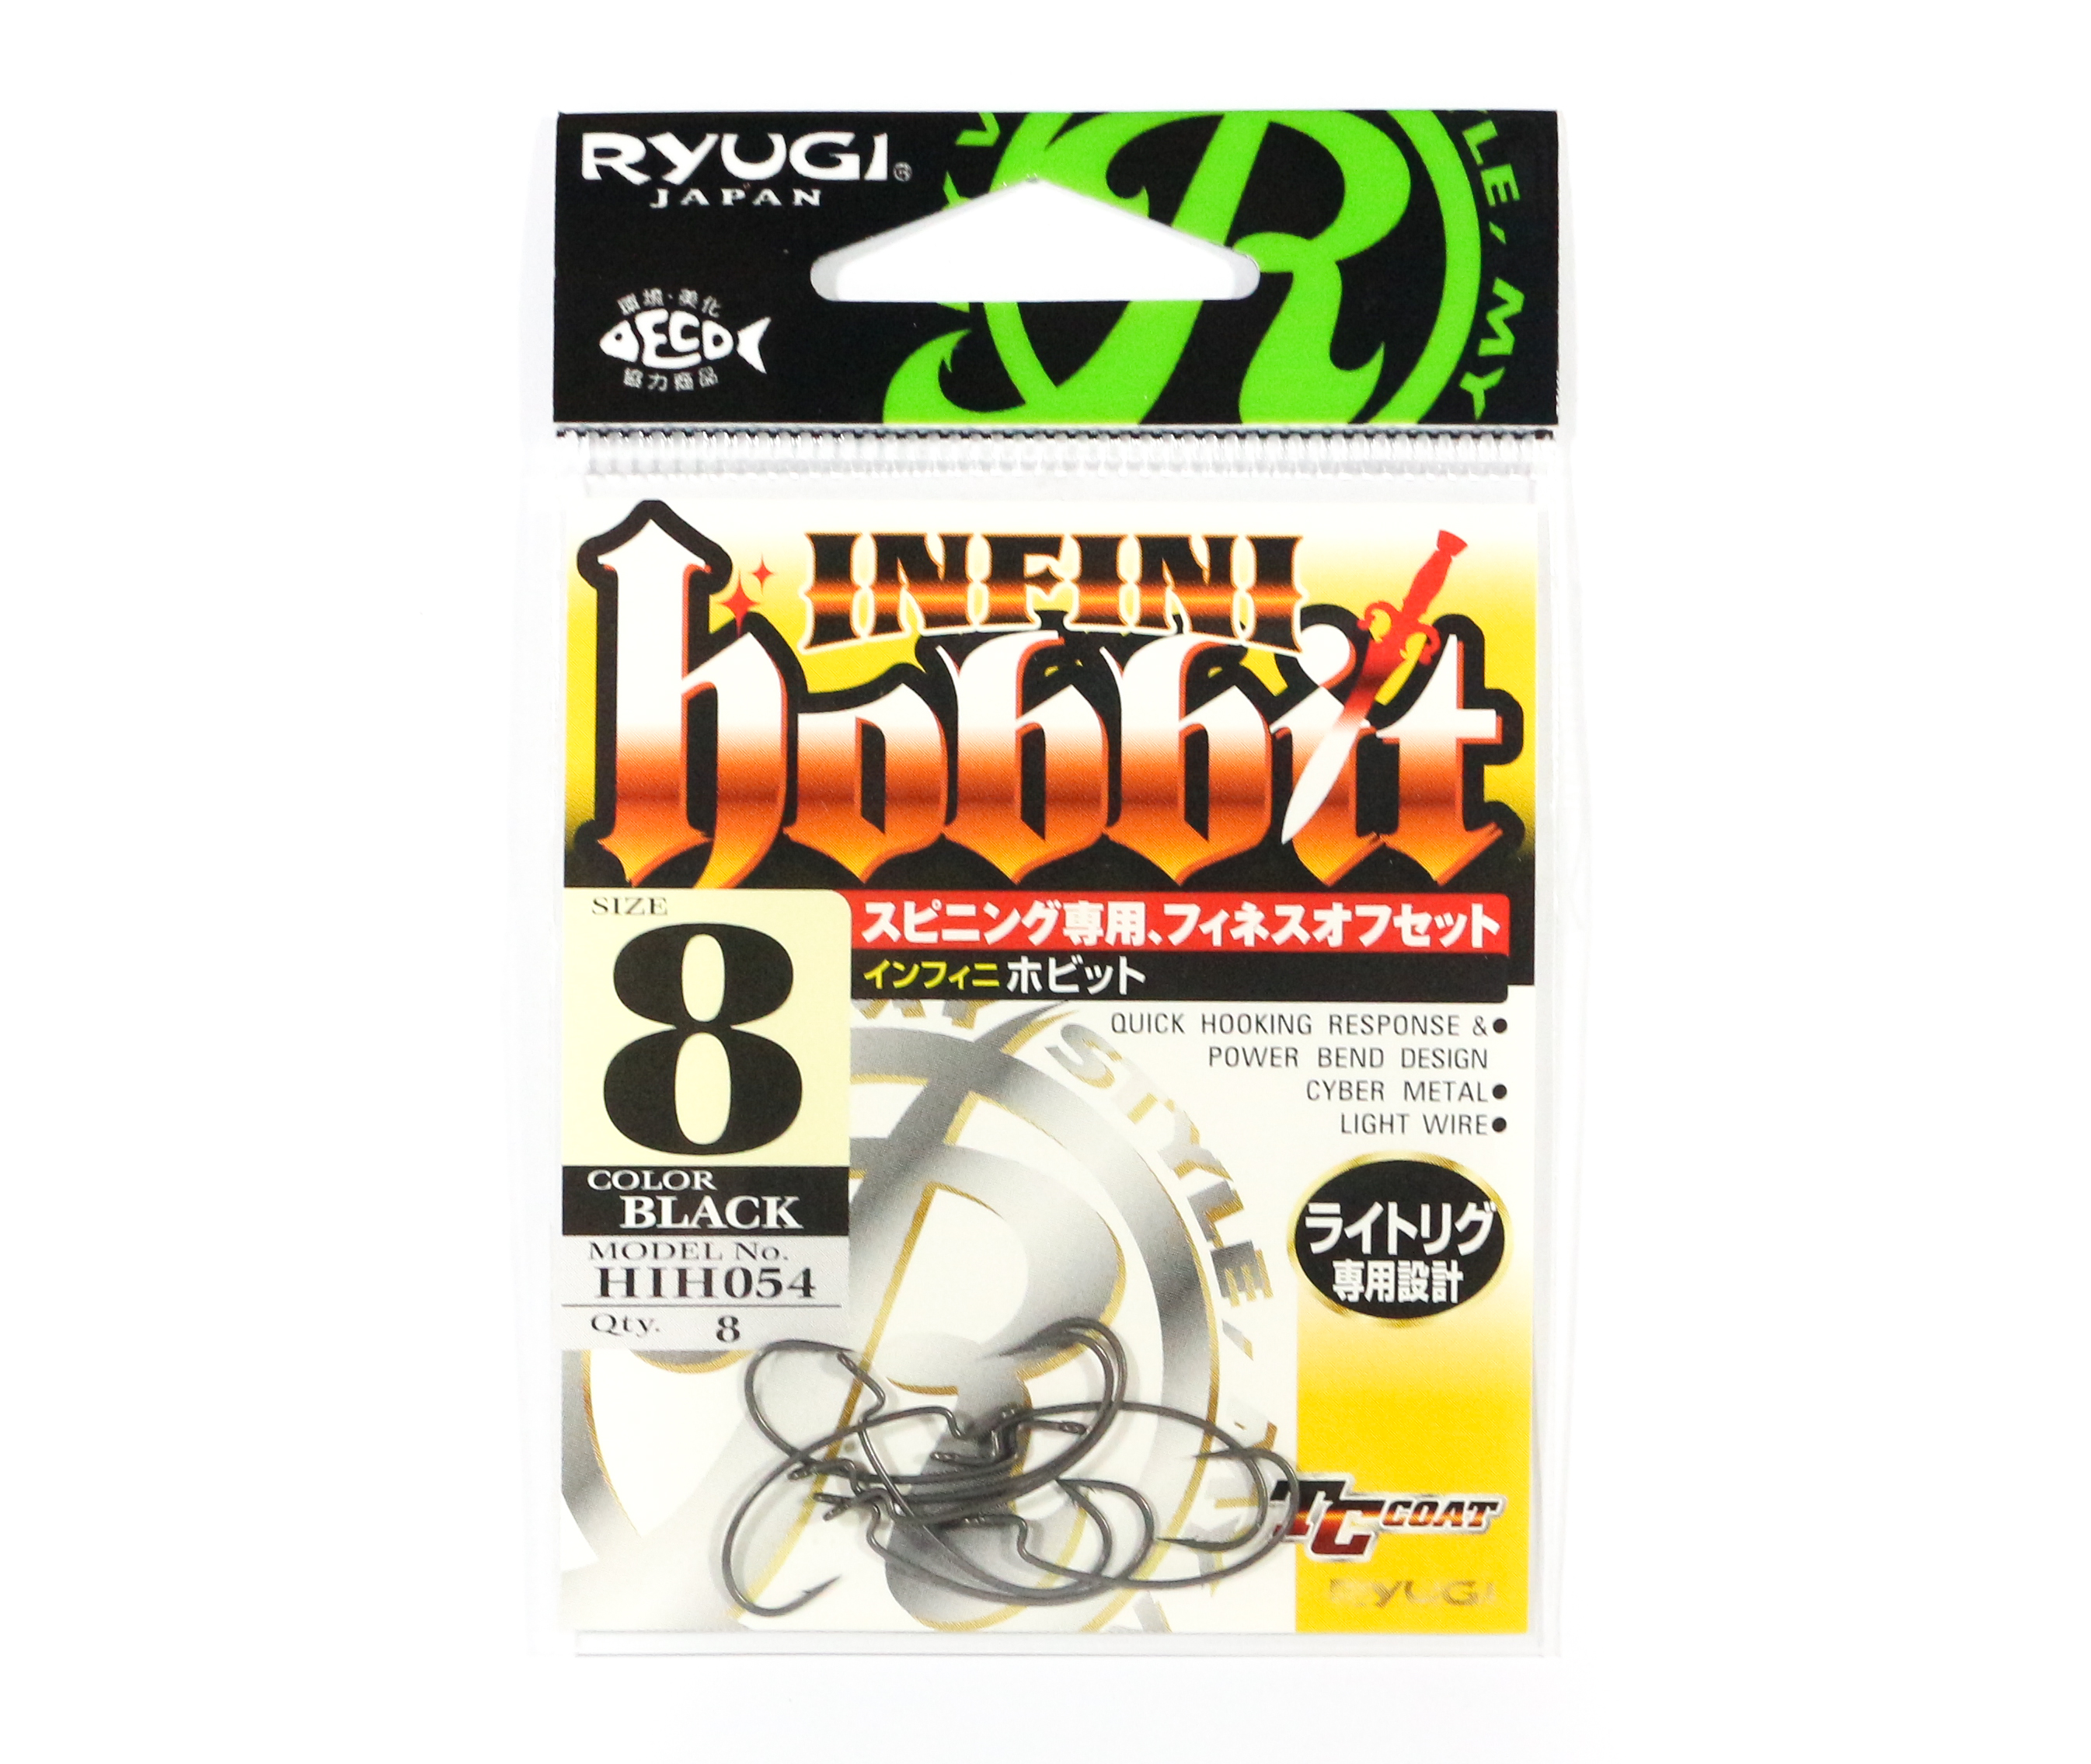 Ryugi HIH054 Infini Hobbit Light Wire Worm Hooks Size 8 (4184)